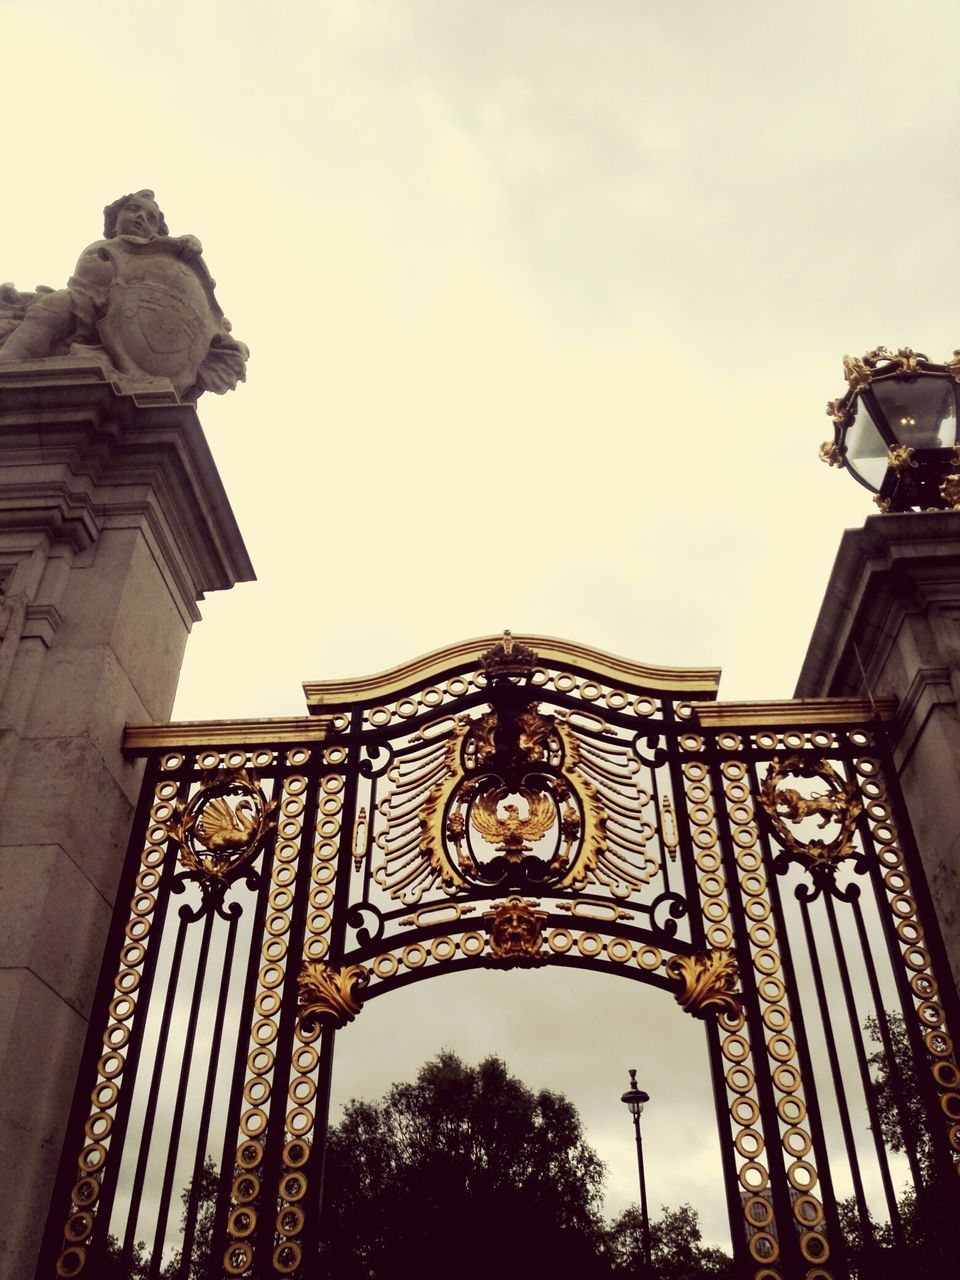 Low Angle View Of Buckingham Palace Gates